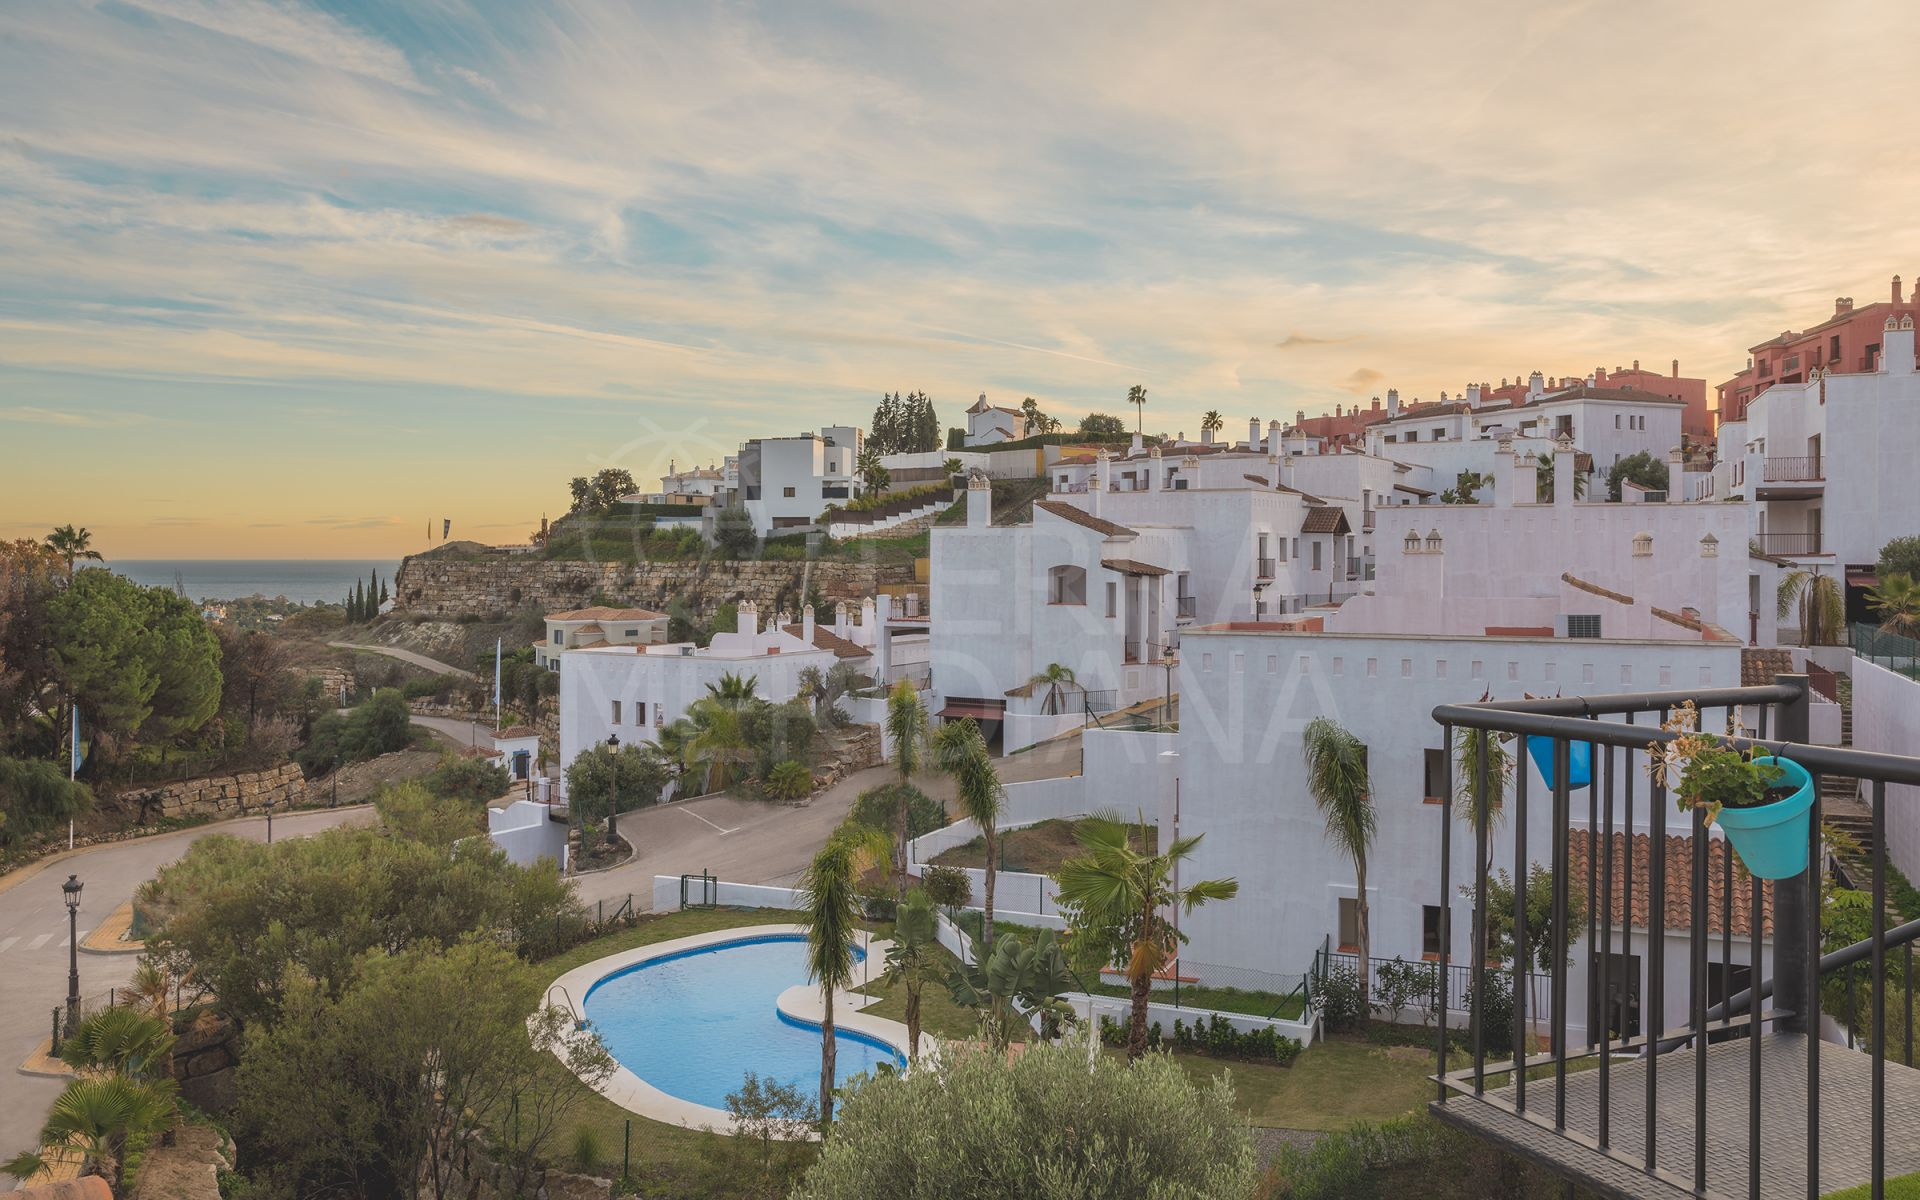 Paraiso Pueblo, Benahavis - 2 and 3 Bedroom contemporary apartments in a luscious community with ample gardens and facilities